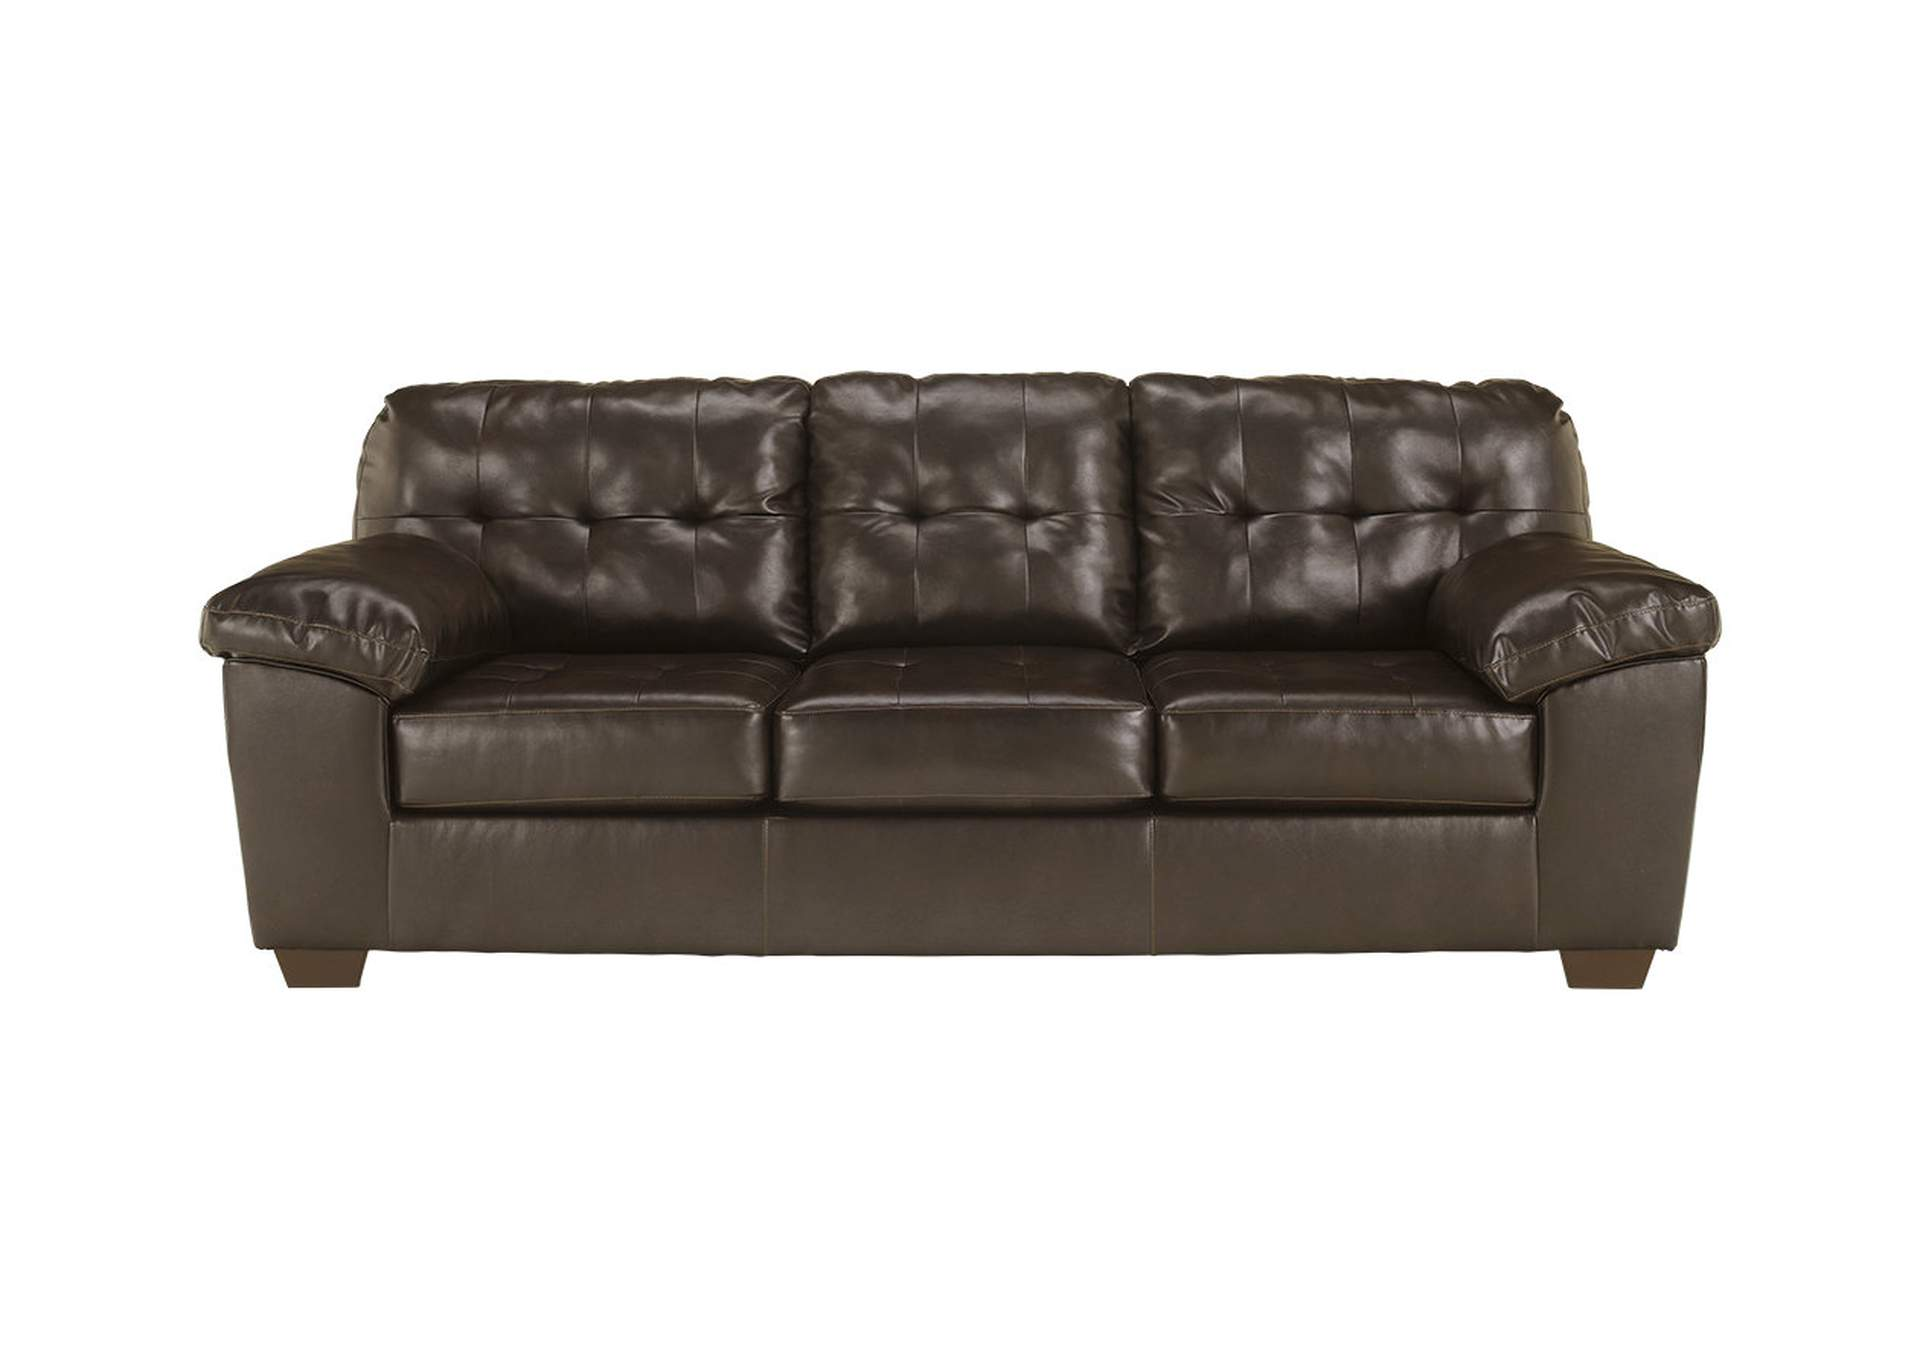 Alliston DuraBlend Chocolate Queen Sofa Sleeper,Signature Design By Ashley